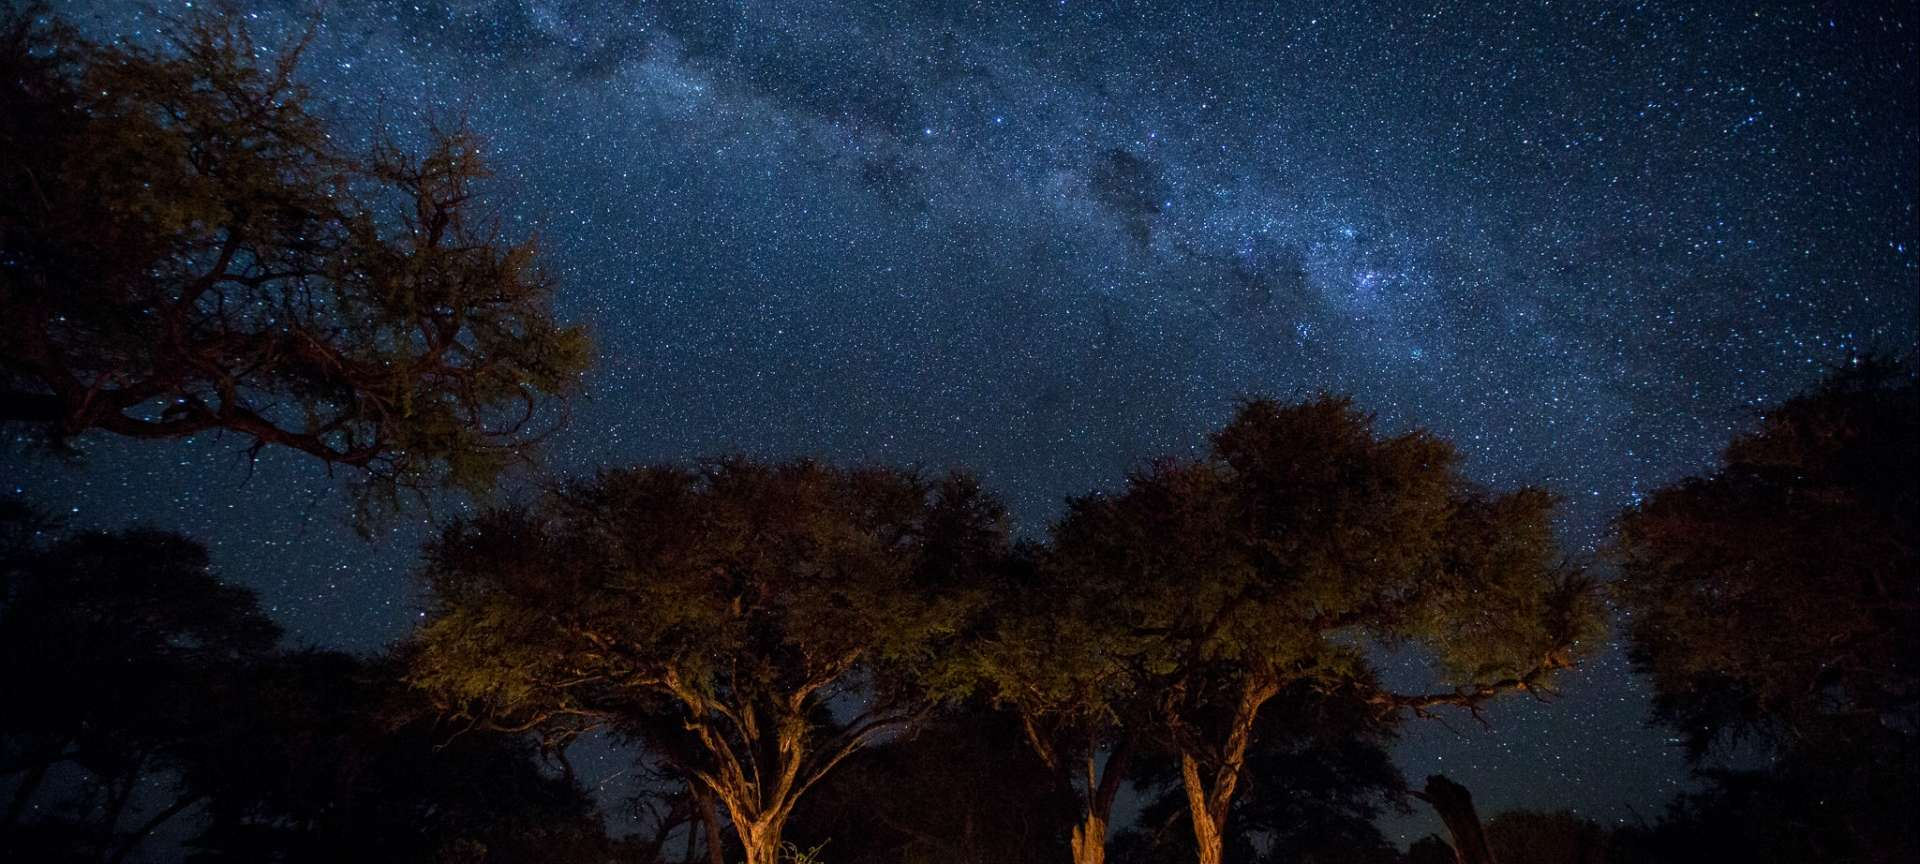 A night sky view of Botswana